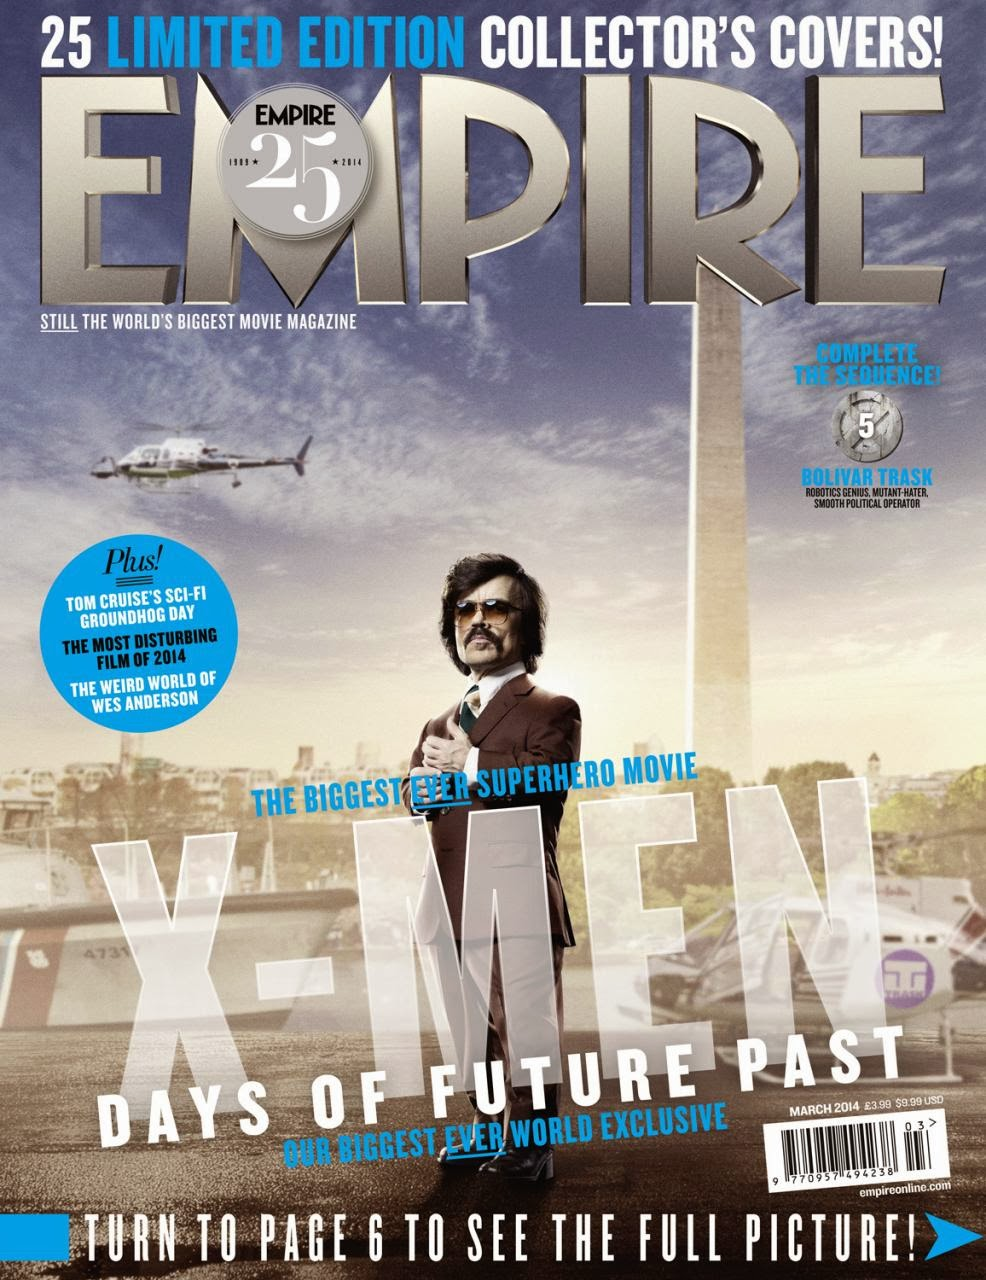 X-MEN DAYS OF FUTURE PAST-Official Poster Banner PROMO EMPIRE COVER-28JANEIRO2014-16